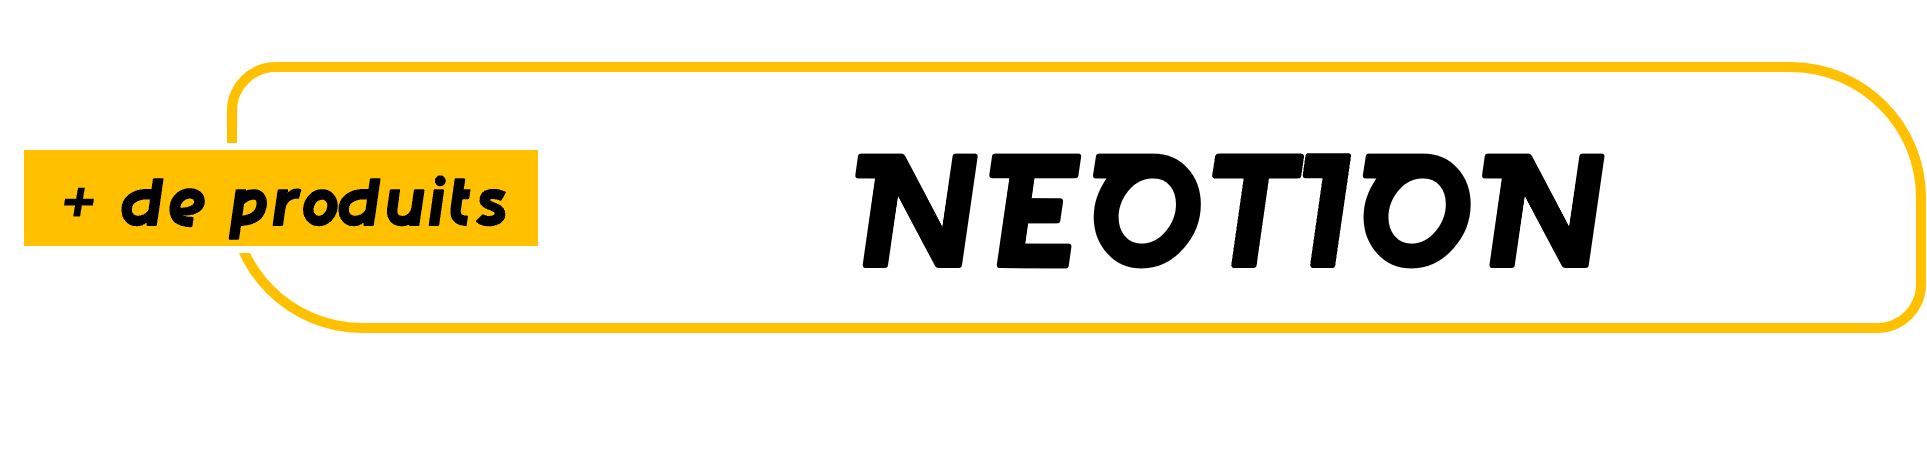 NEOTION